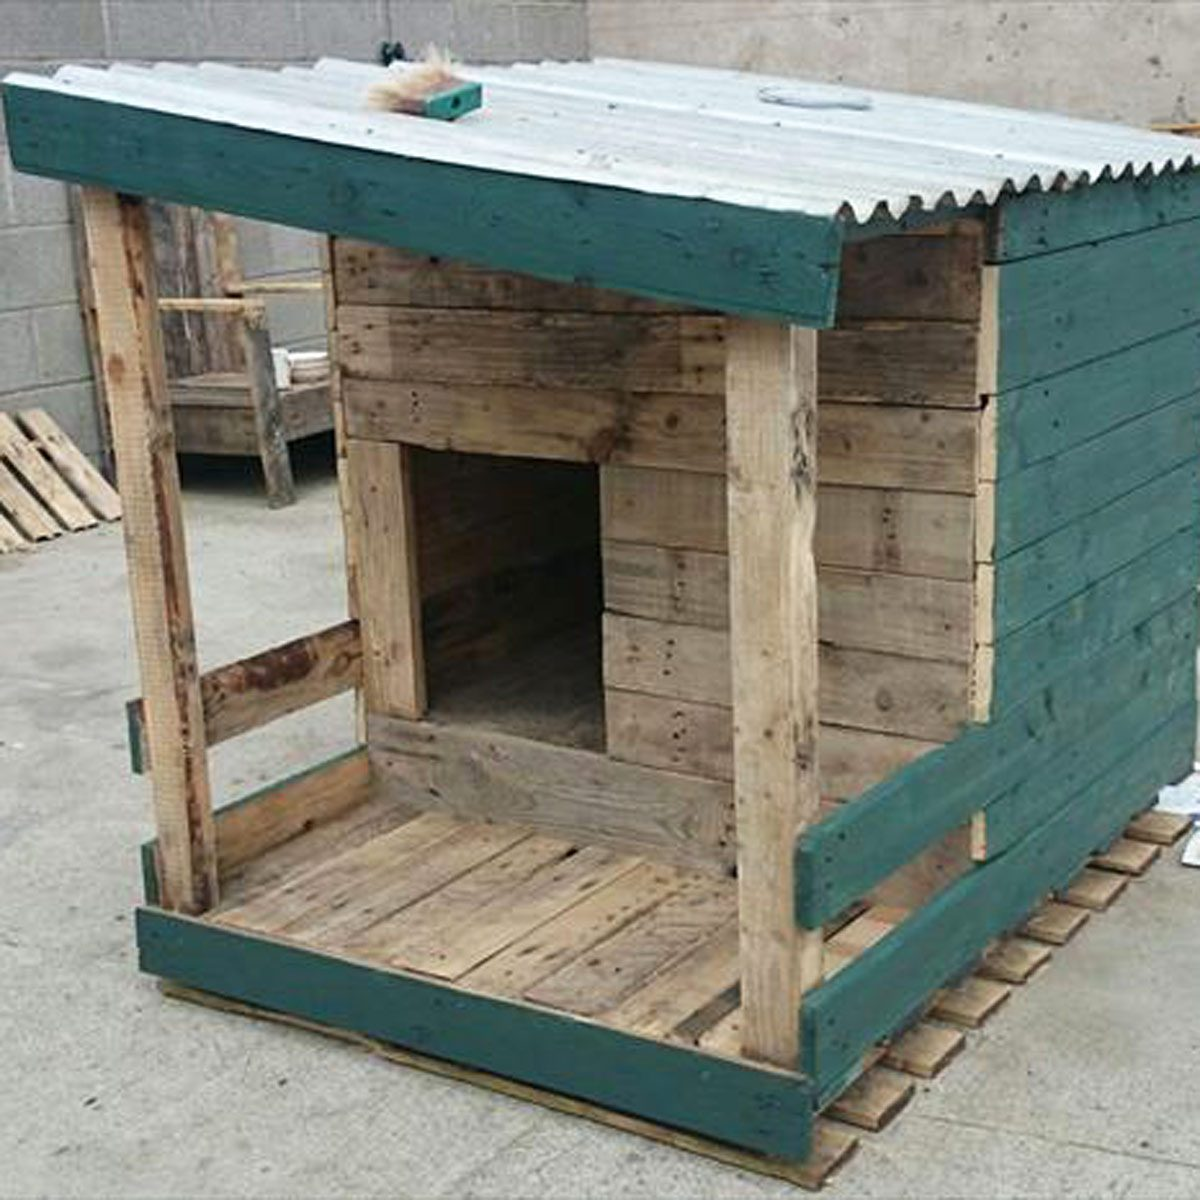 dog-house-built-from-pallet-wood